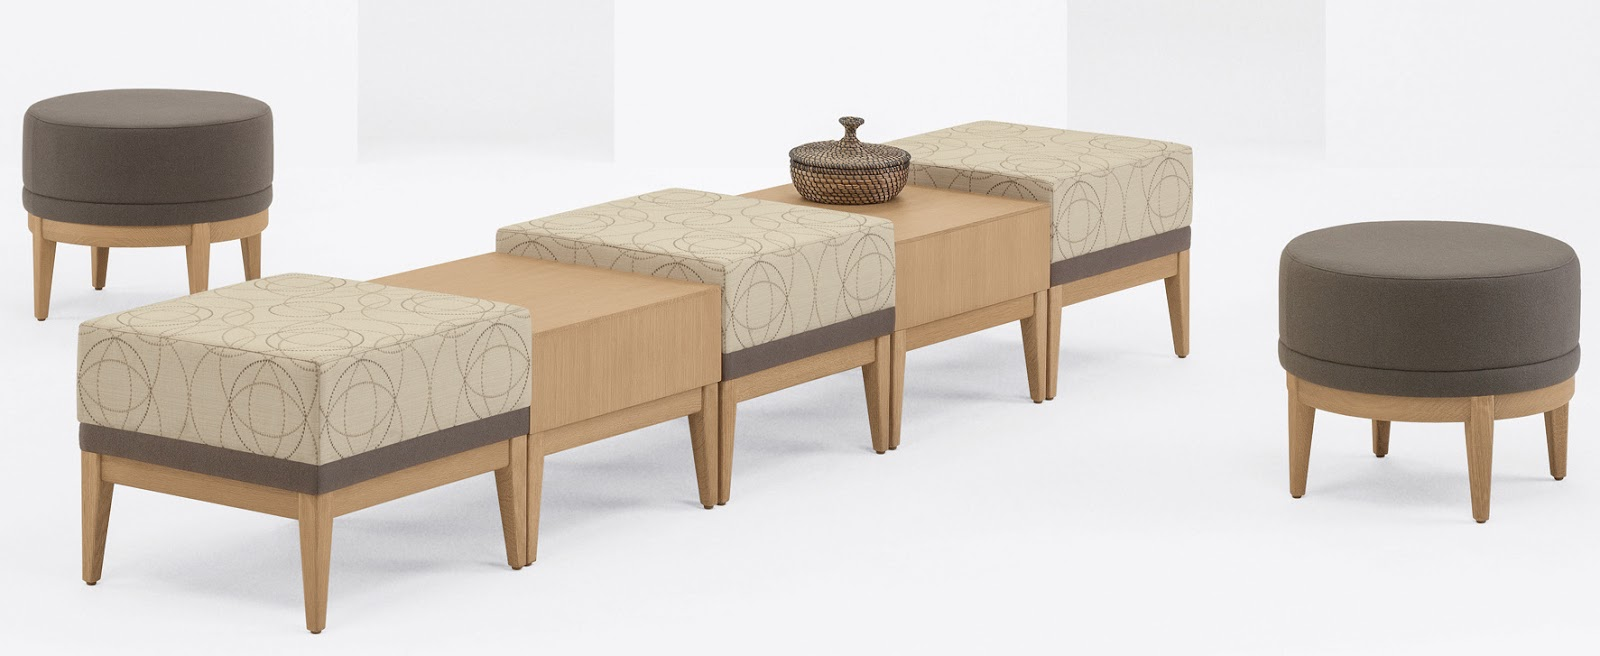 ARCADIA Ovate Benches 5  http://www.arcadiacontract.com/products/details.php?id=5321